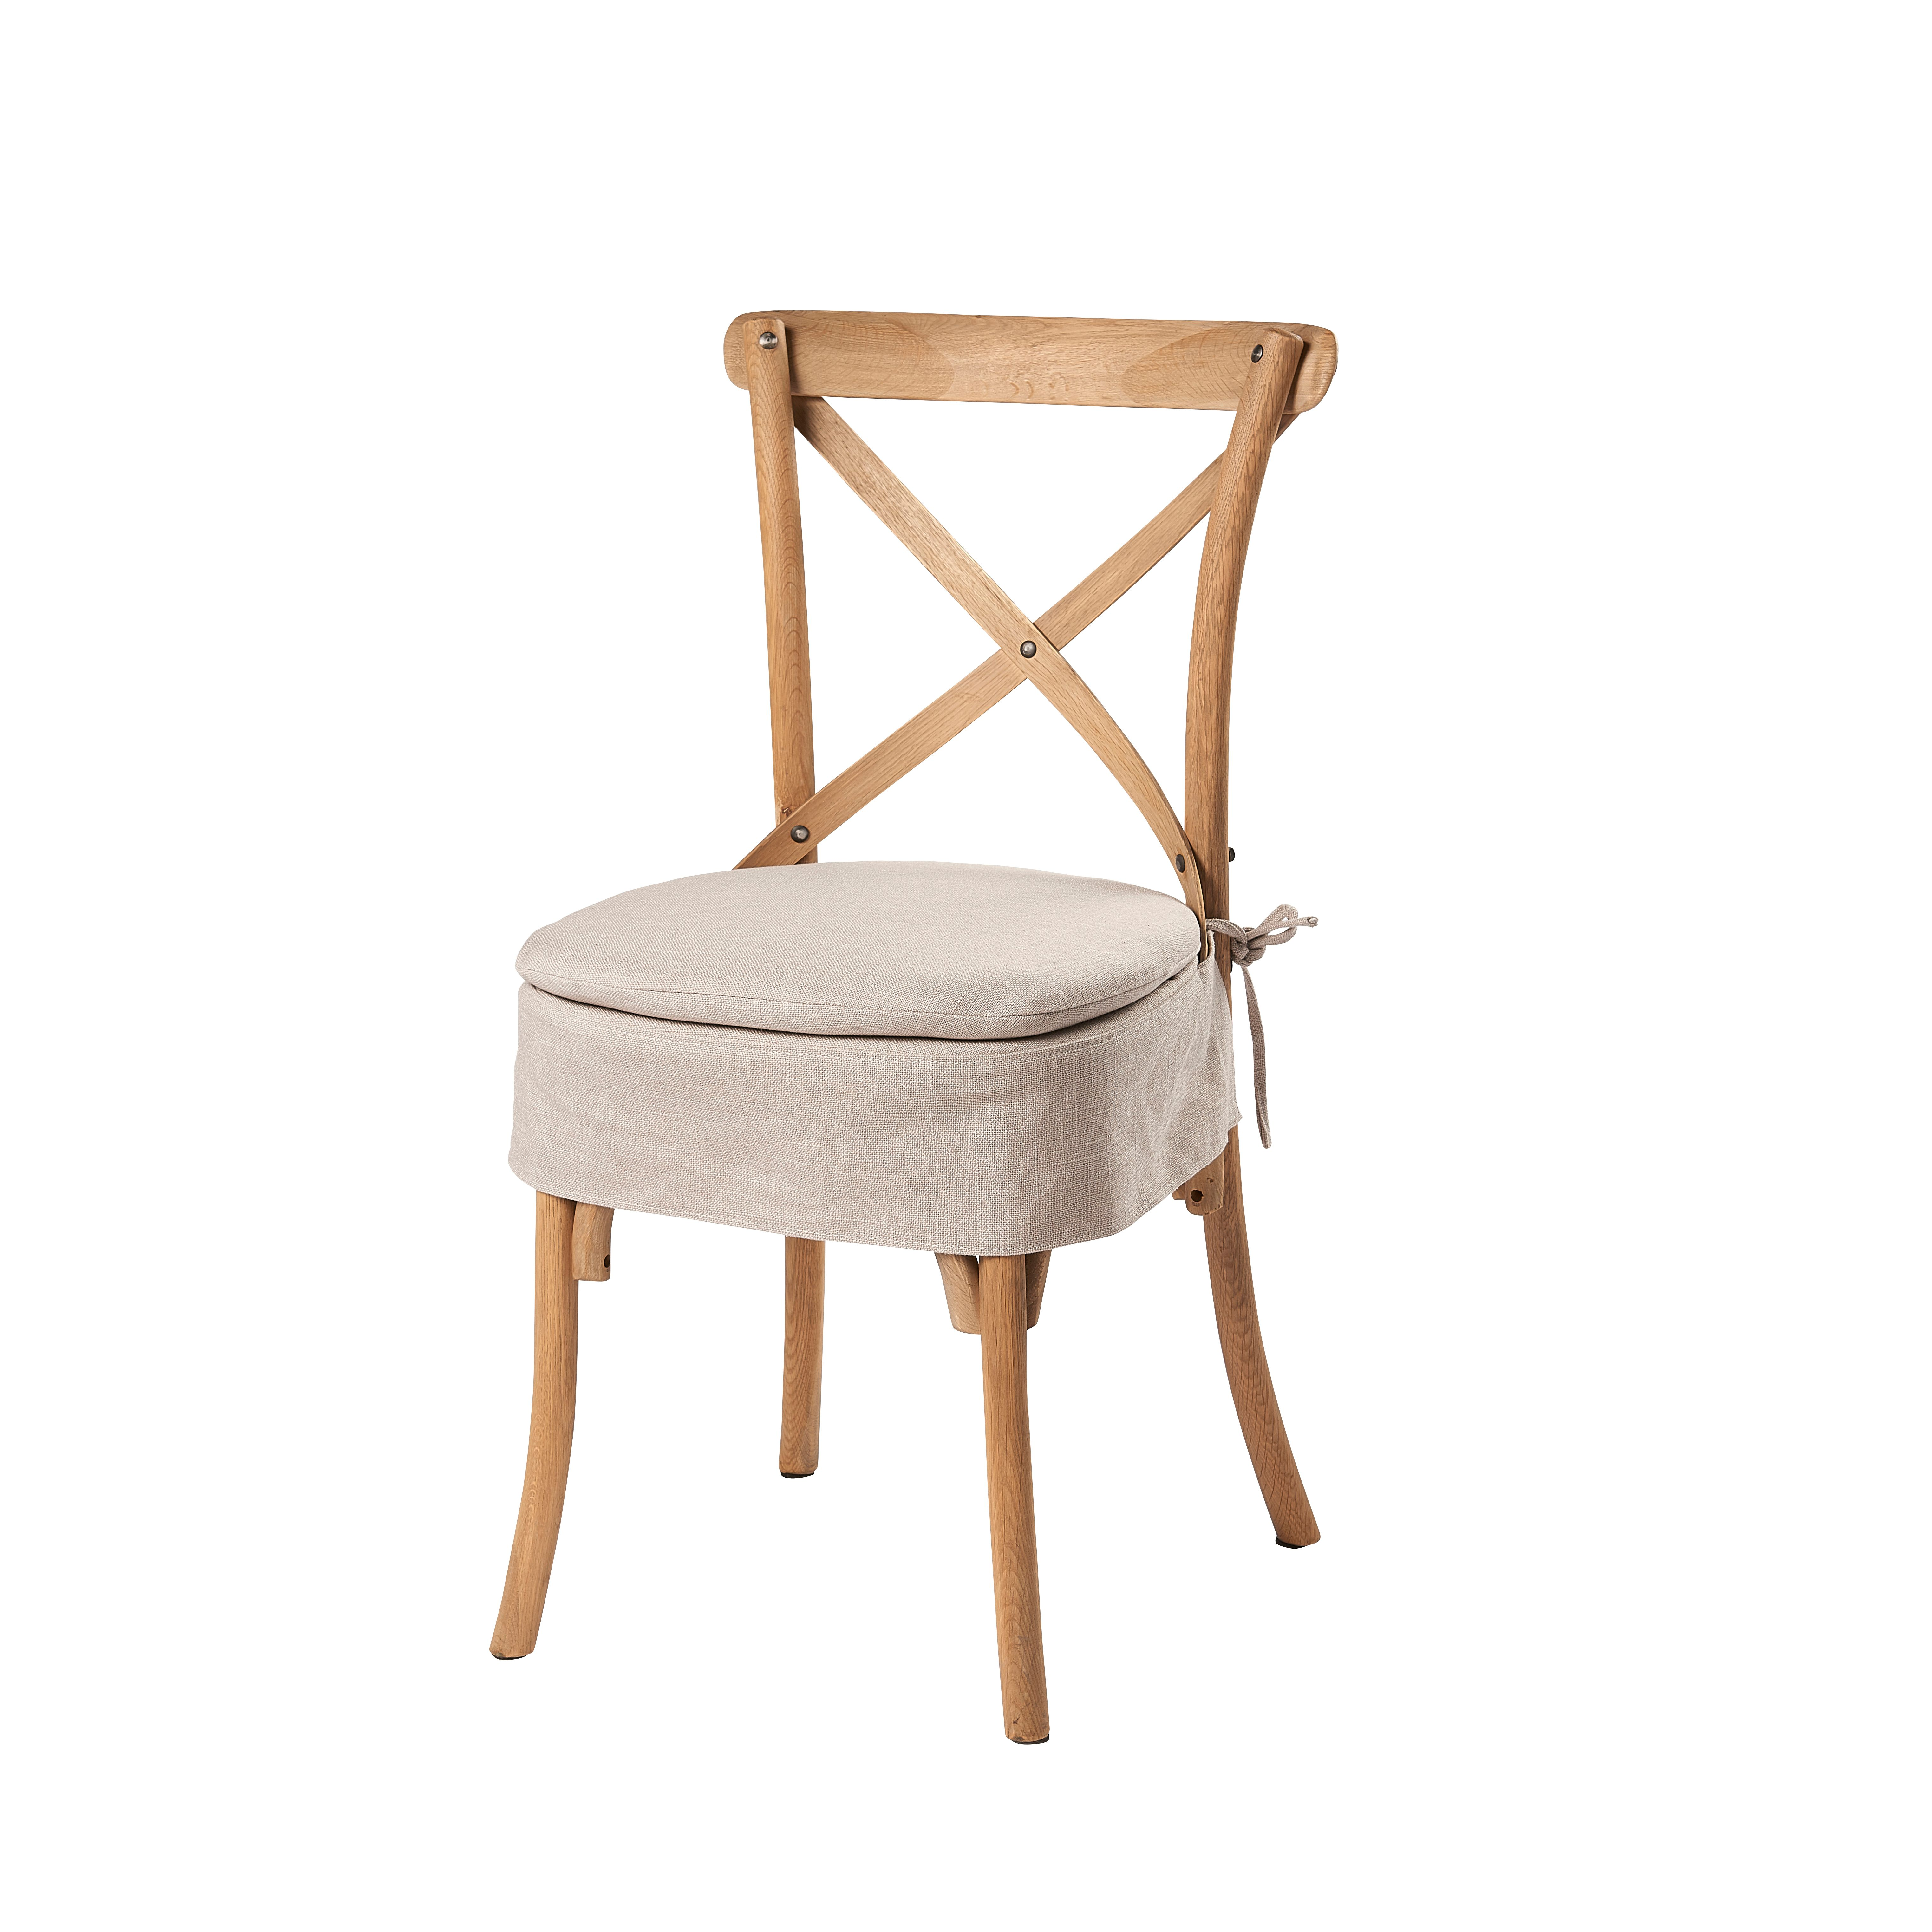 Ariello Cross Back Chair with Cream Seat Pad